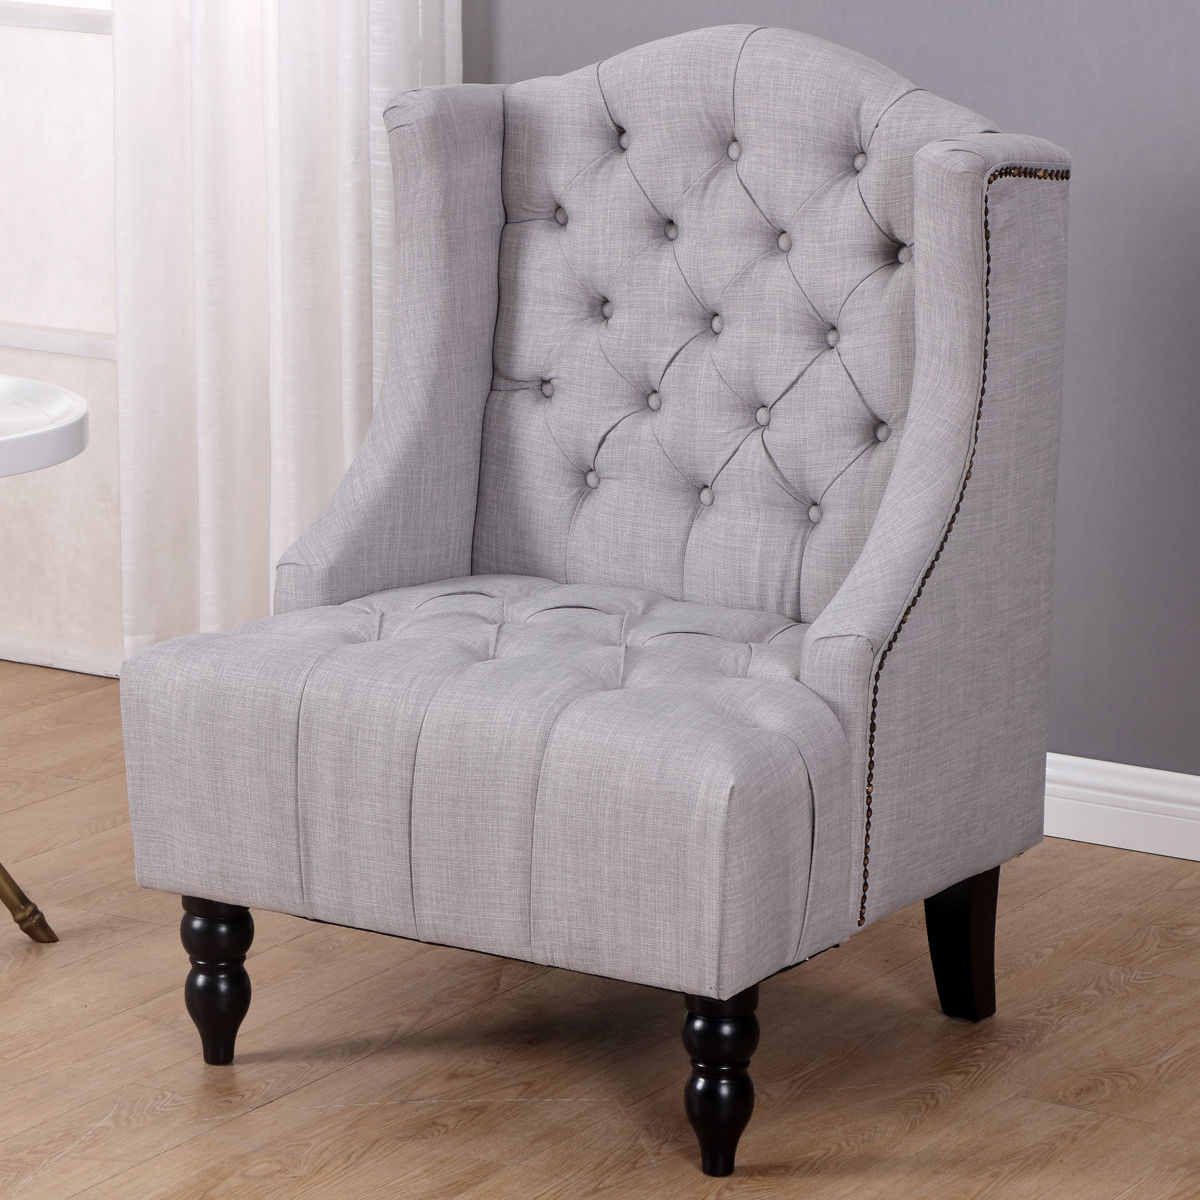 Giantex Modern Tall Wingback Tufted Accent Armchair Living Room Fabric  Vintage Sofa Chair Nailhead Home Furniture HW57313GR In Living Room Chairs  From ...